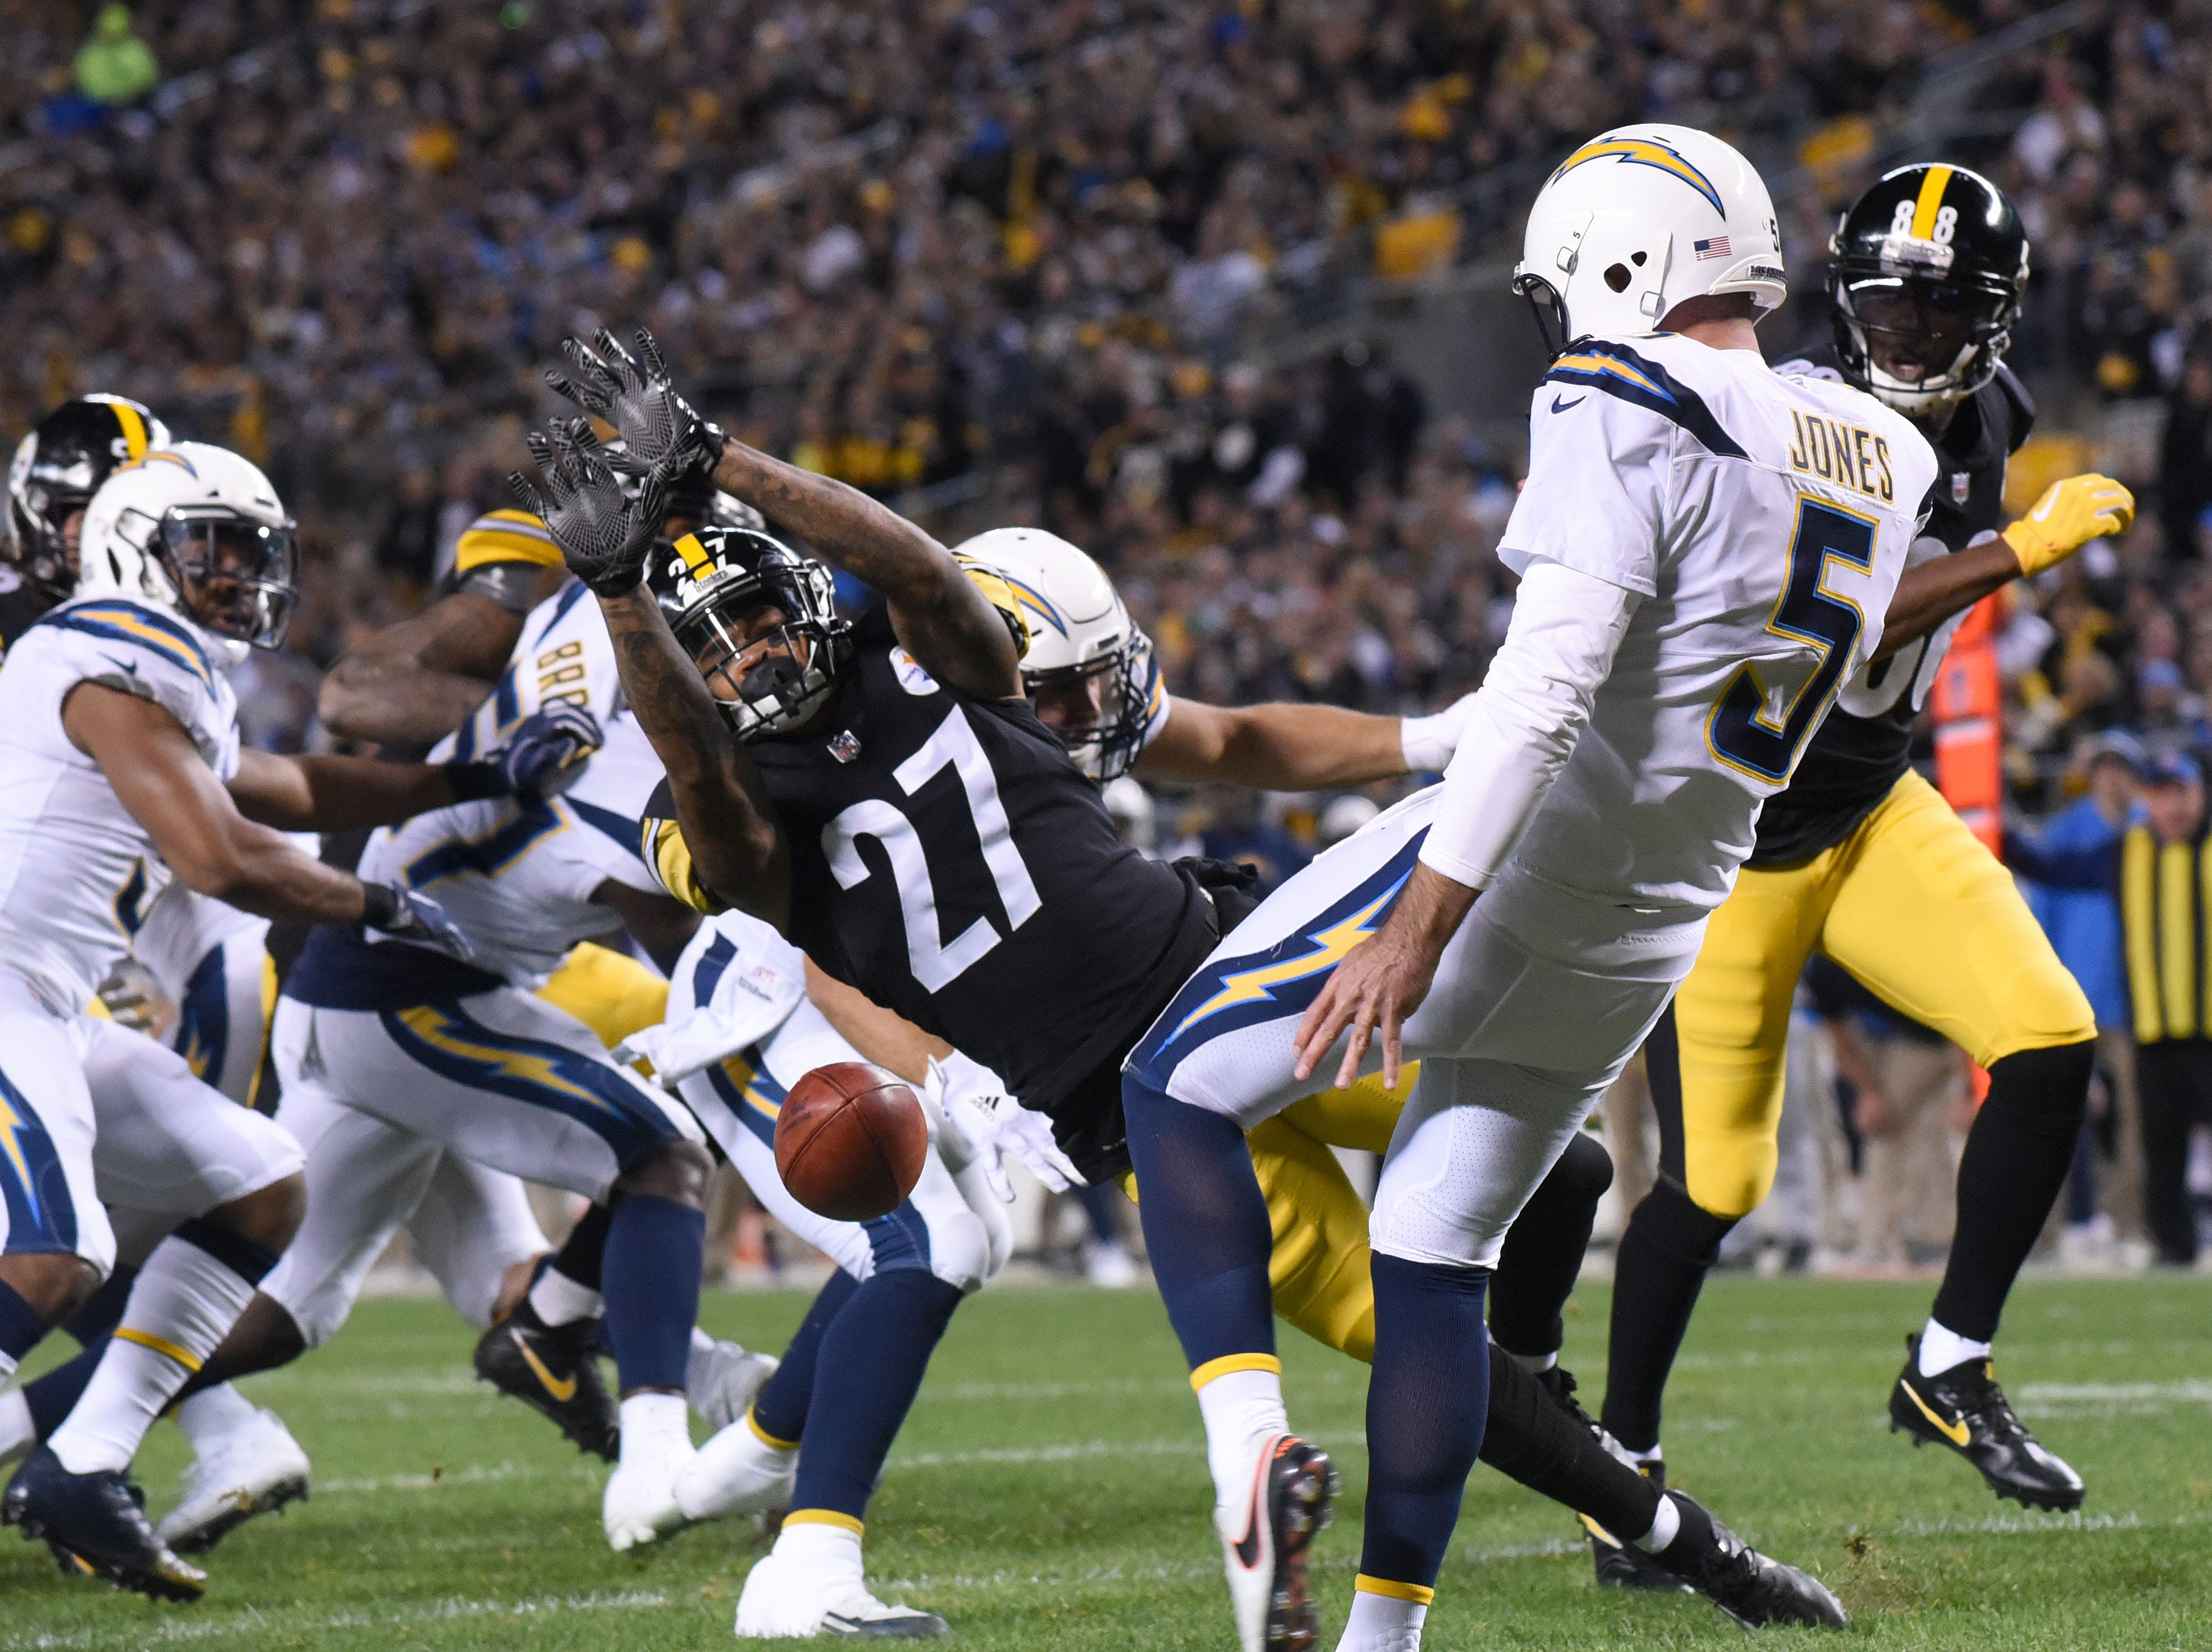 Chargers punter Donnie Jones almost has his first quarter punt blocked Steelers safety Marcus Allen.